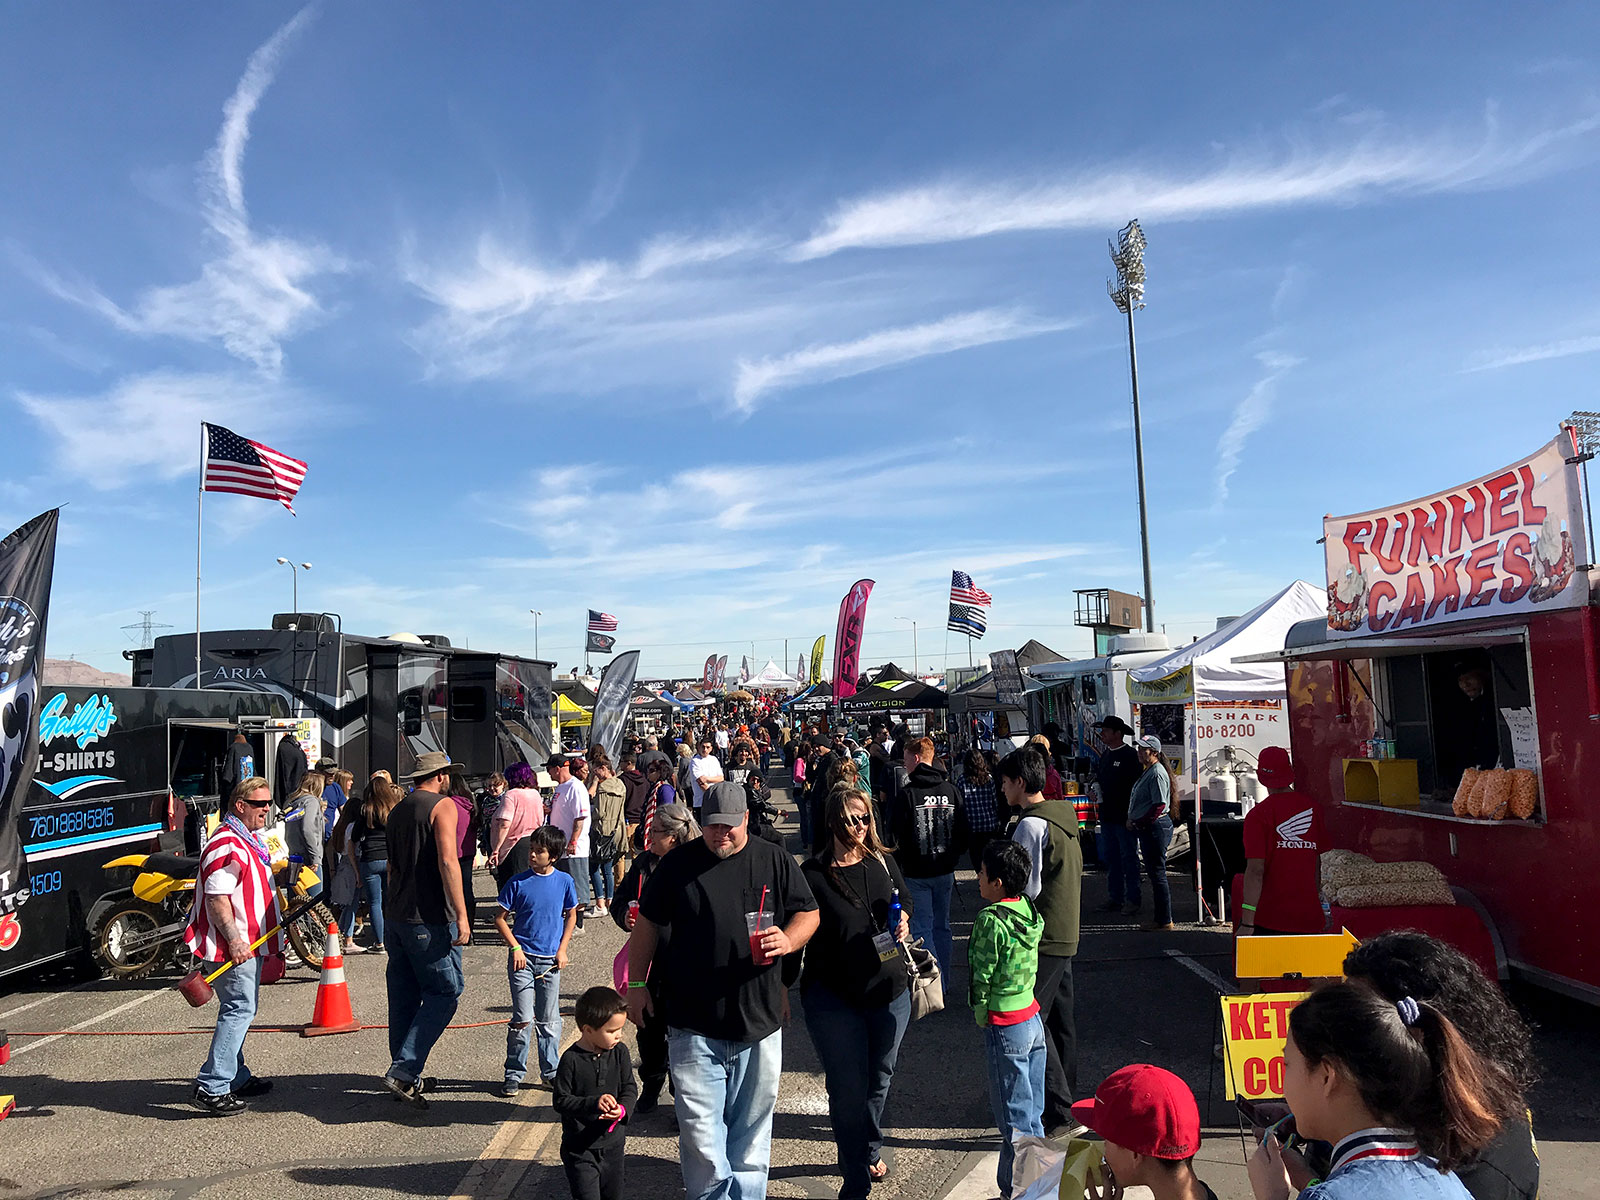 Vendors row is a mash-up of a music festival, trade show, and state fair with plenty of good food and things to do.